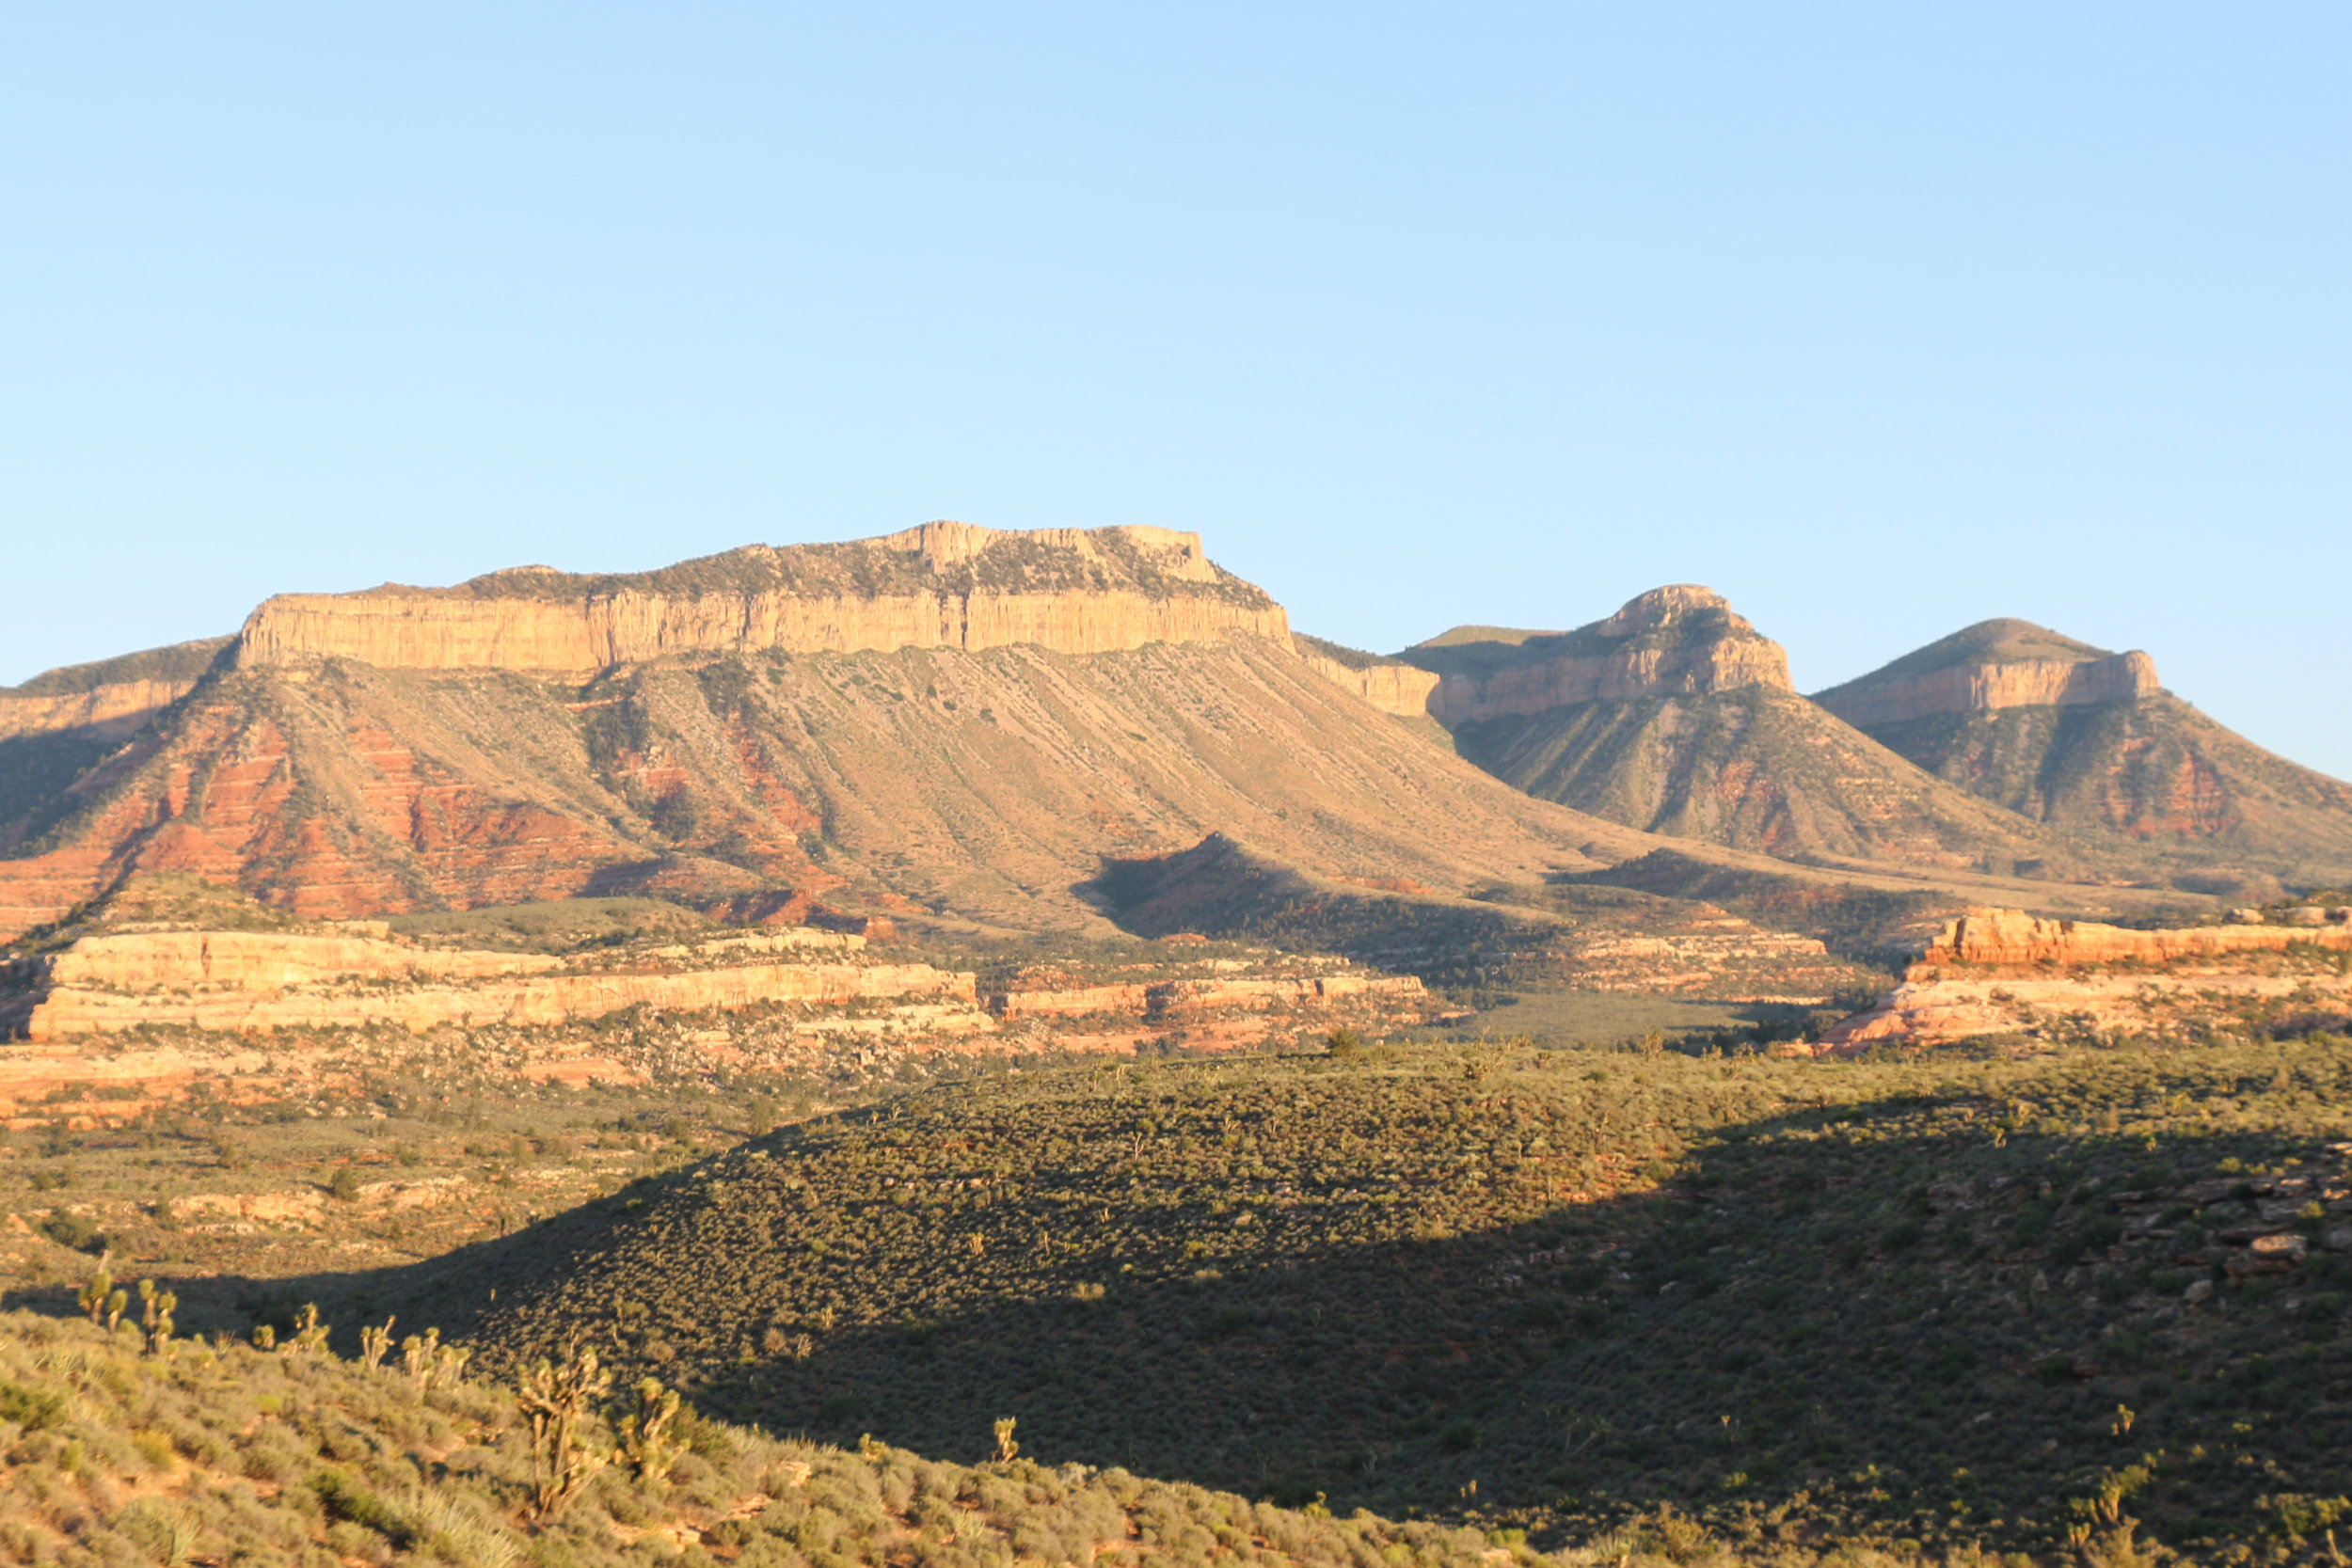 Driving through the heart of the Grand Canyon-Parashant National Monument.